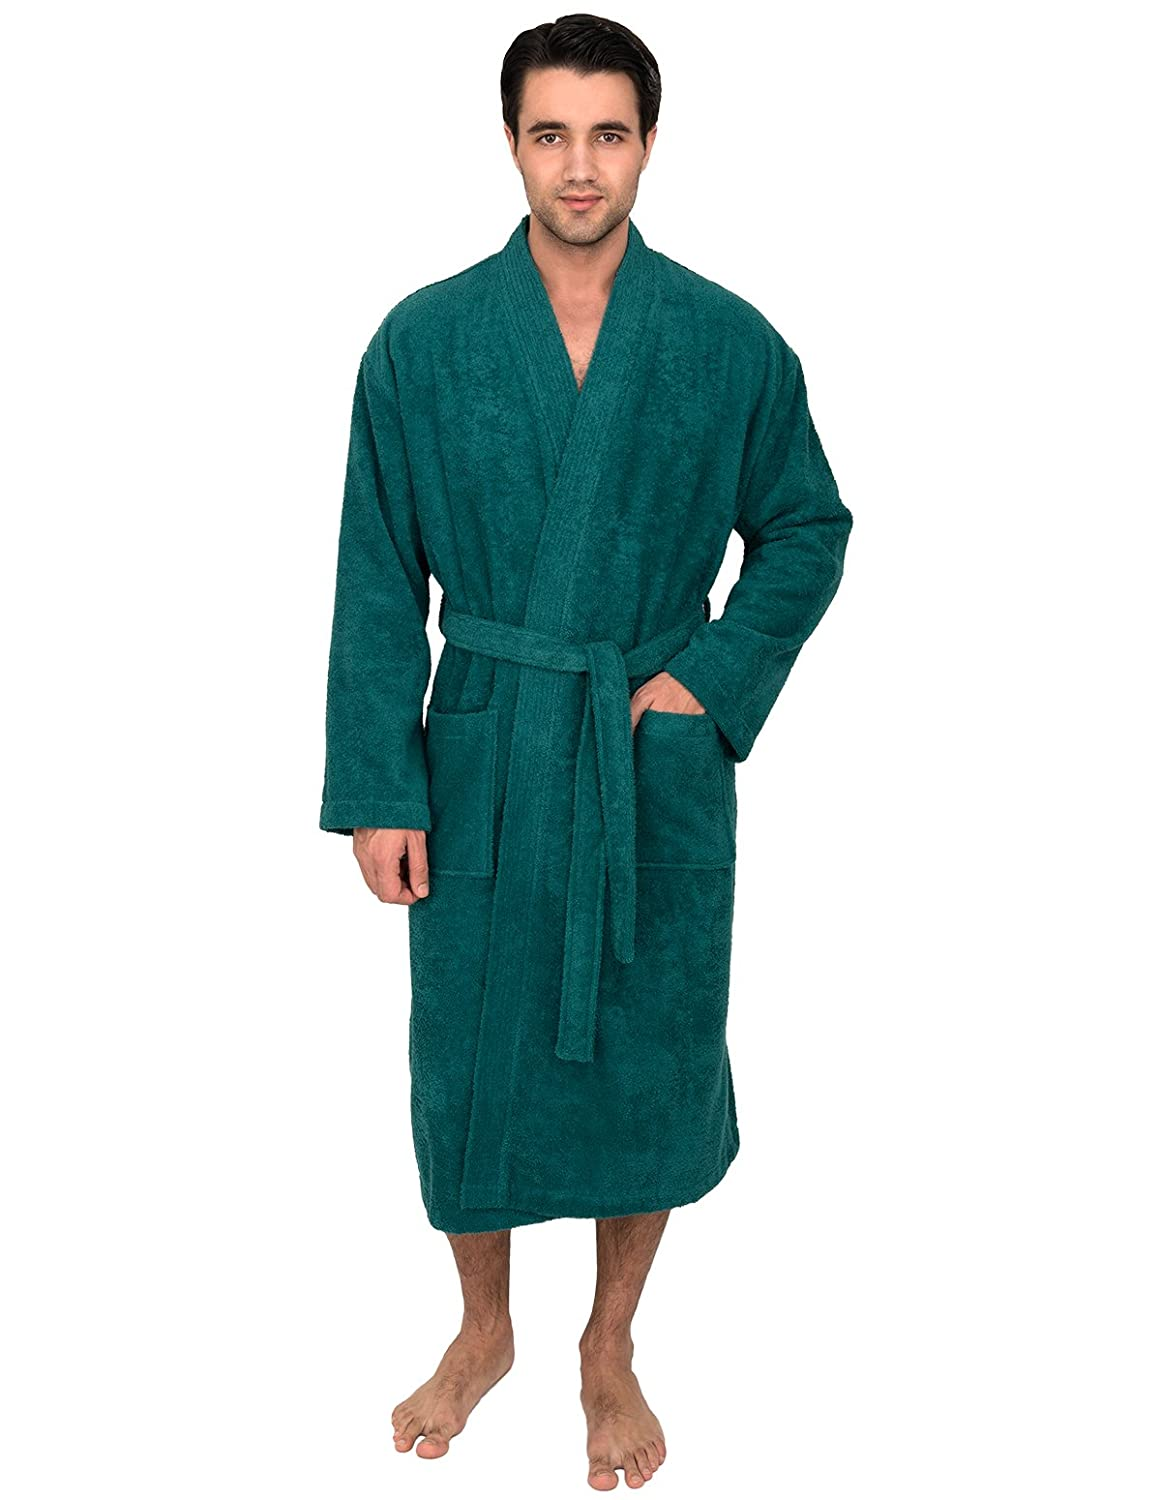 f69922b21b Mens turkish cotton bathrobe terry kimono robe made in turkey jpg 1161x1500  Celtic robes for men